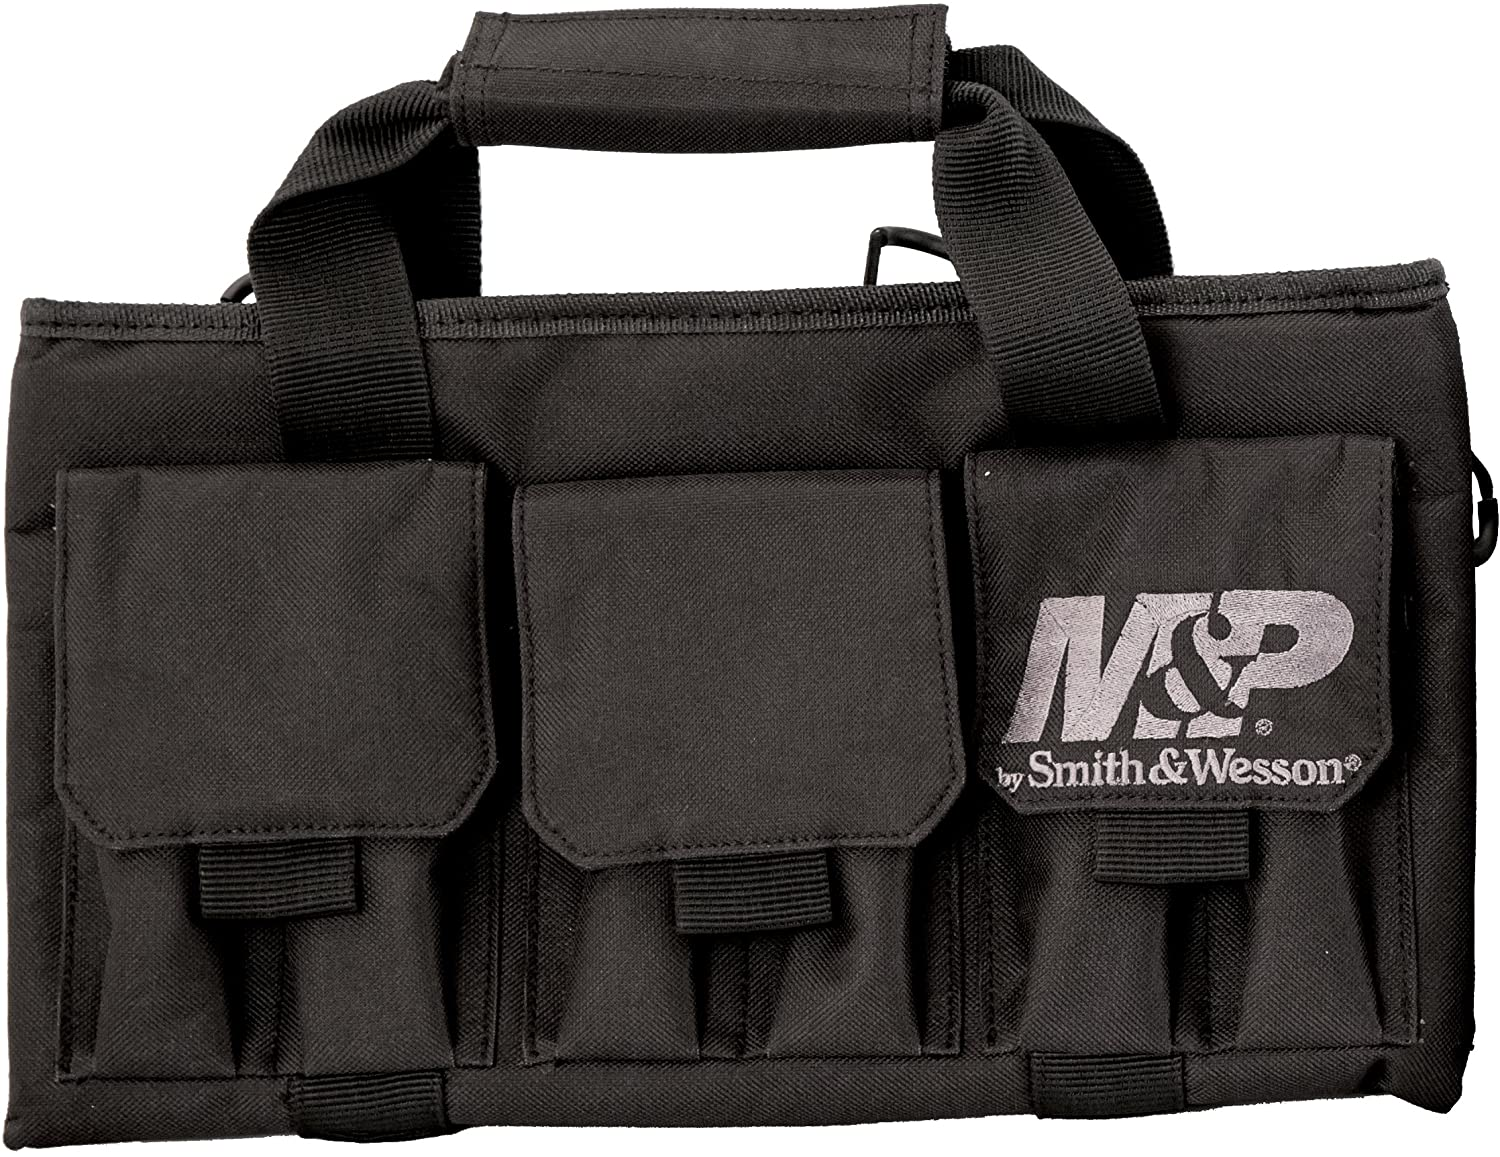 Smith Wesson M P Pro Tac Padded Single Handgun Case with Ballistic Fabric Construction and External Pockets for Shooting, Range, Storage and Transport